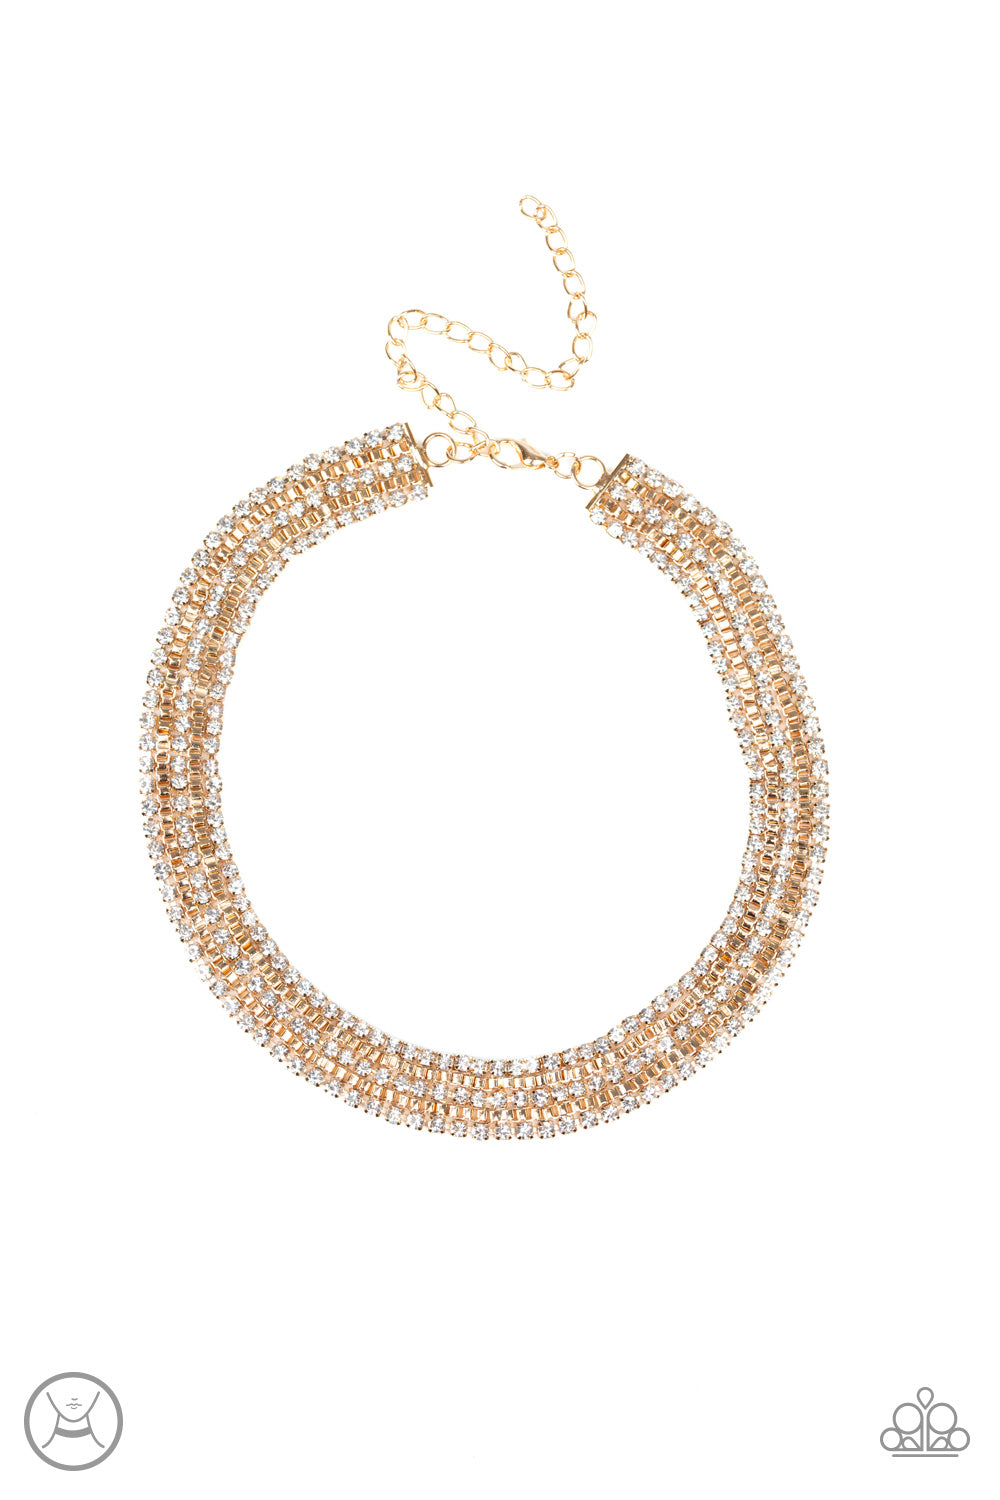 Full REIGN - Gold Paparazzi Jewelry Necklace